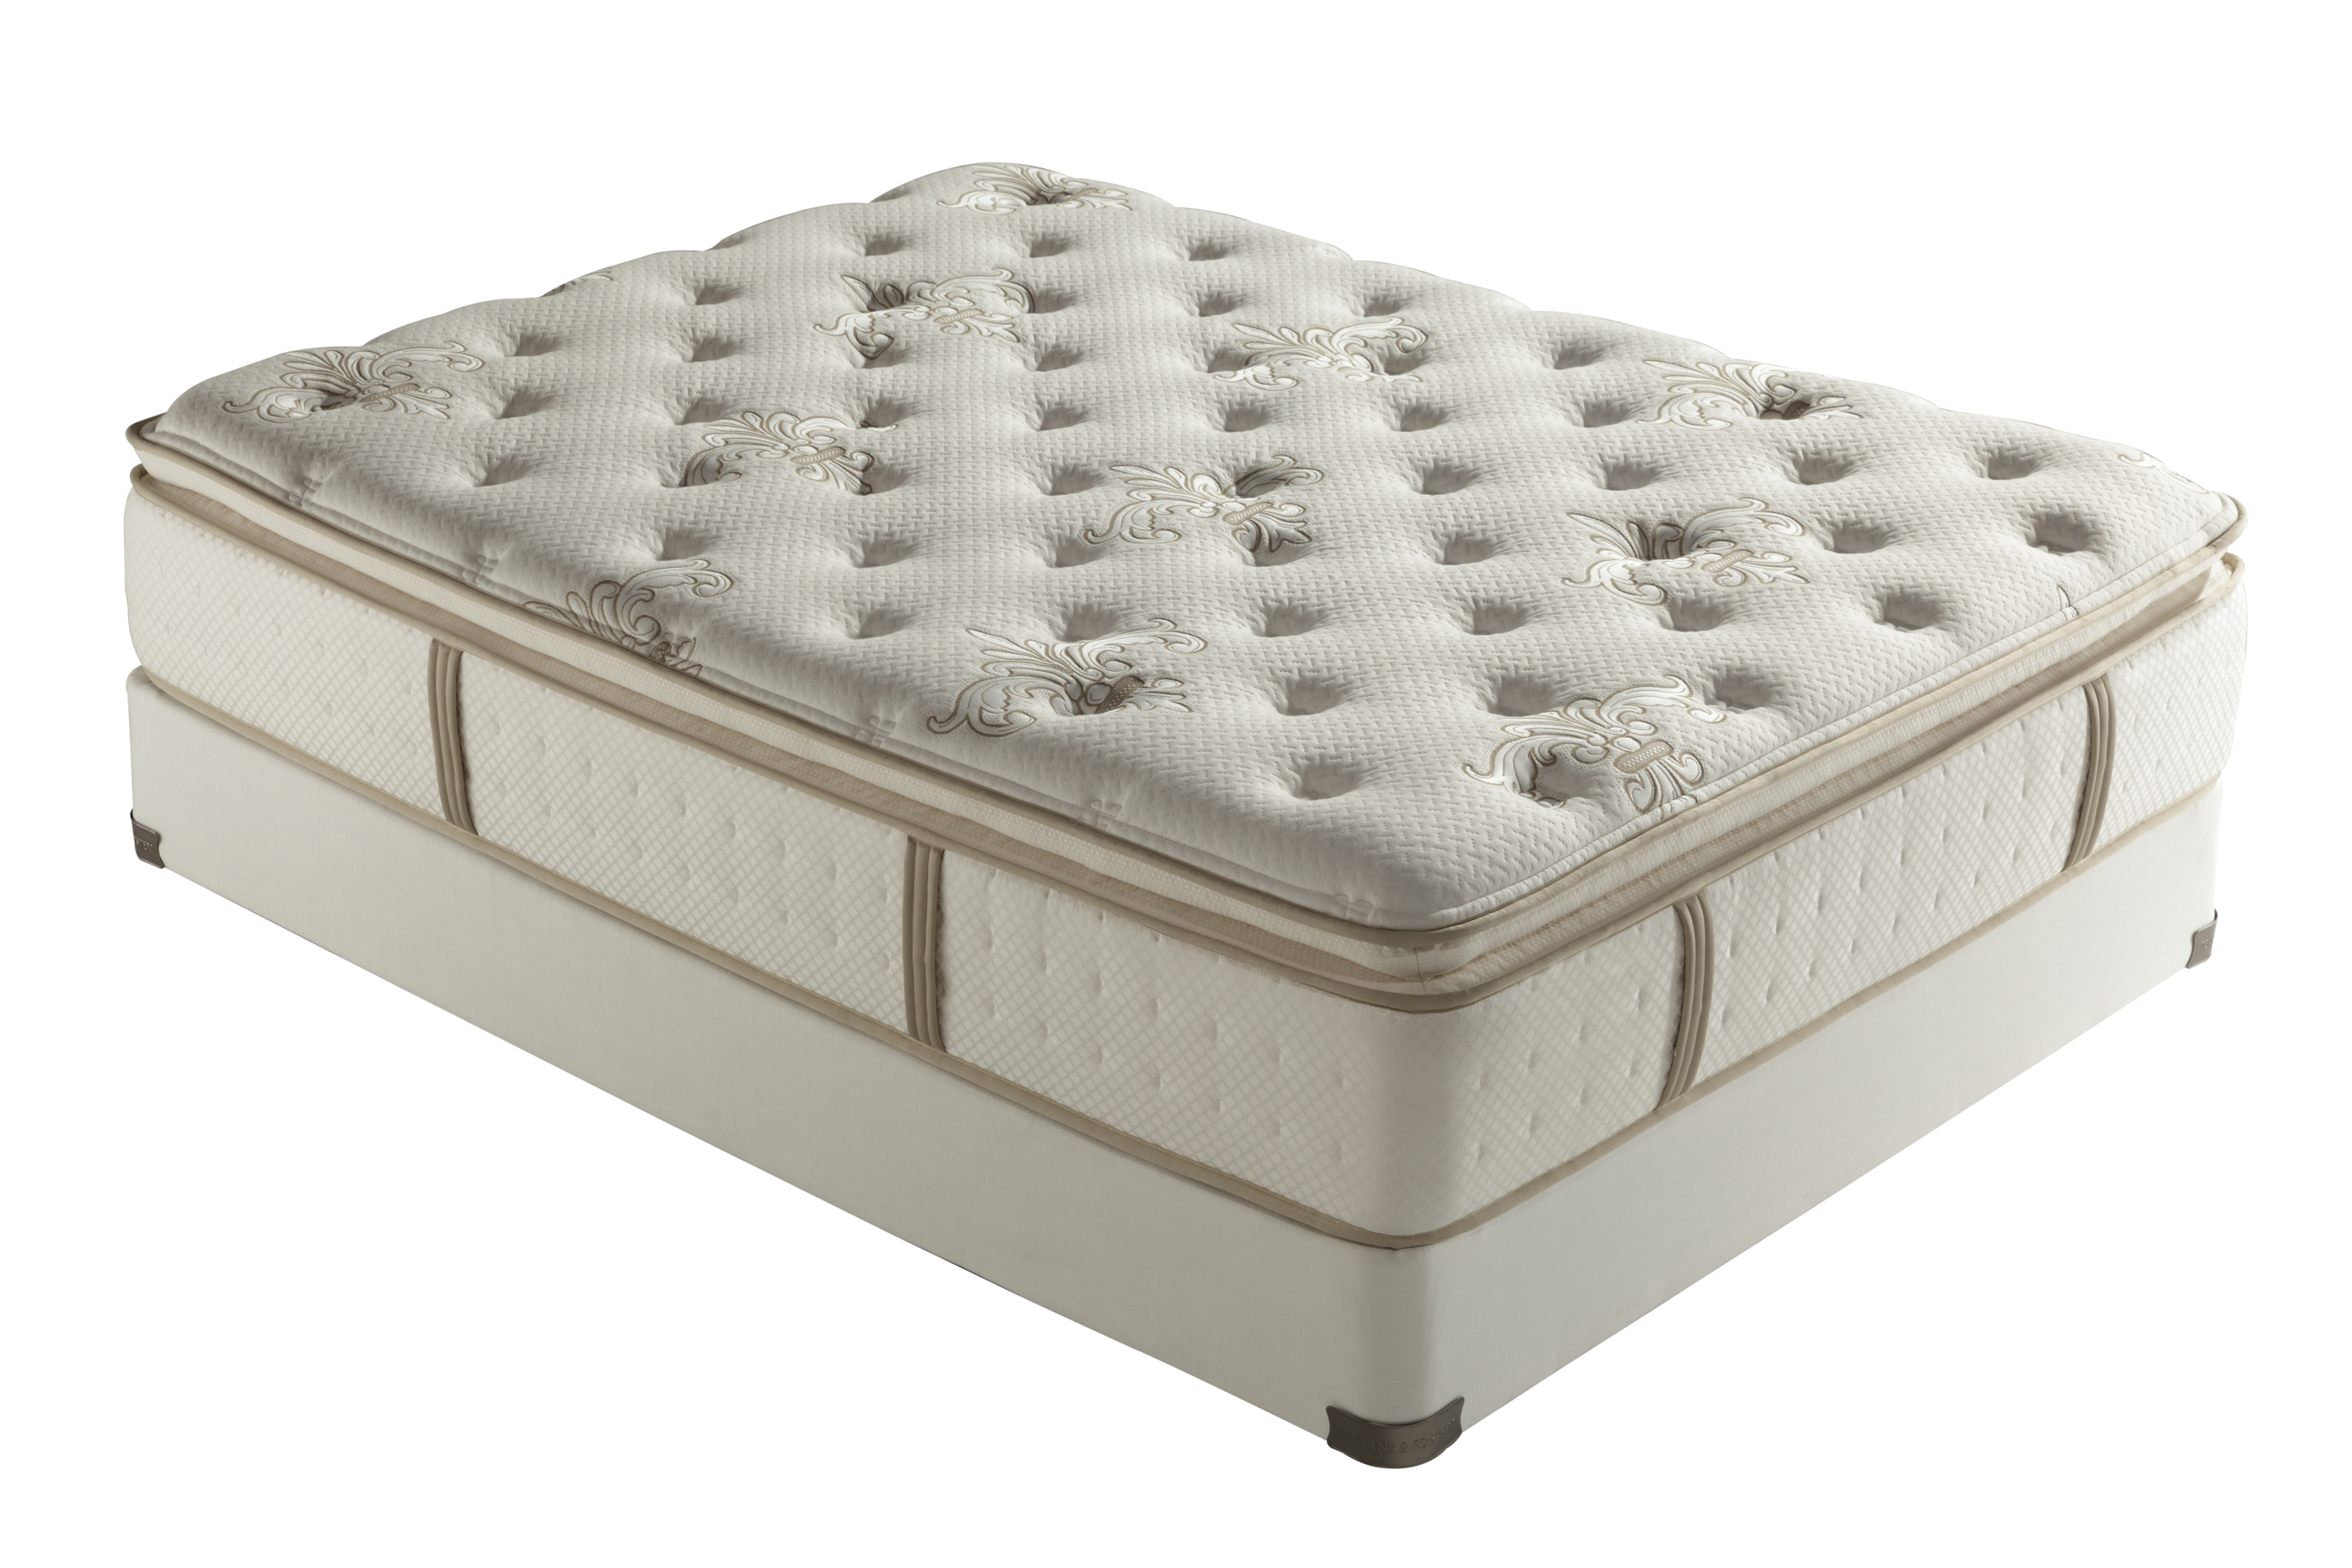 stearns and foster firm pillow top online